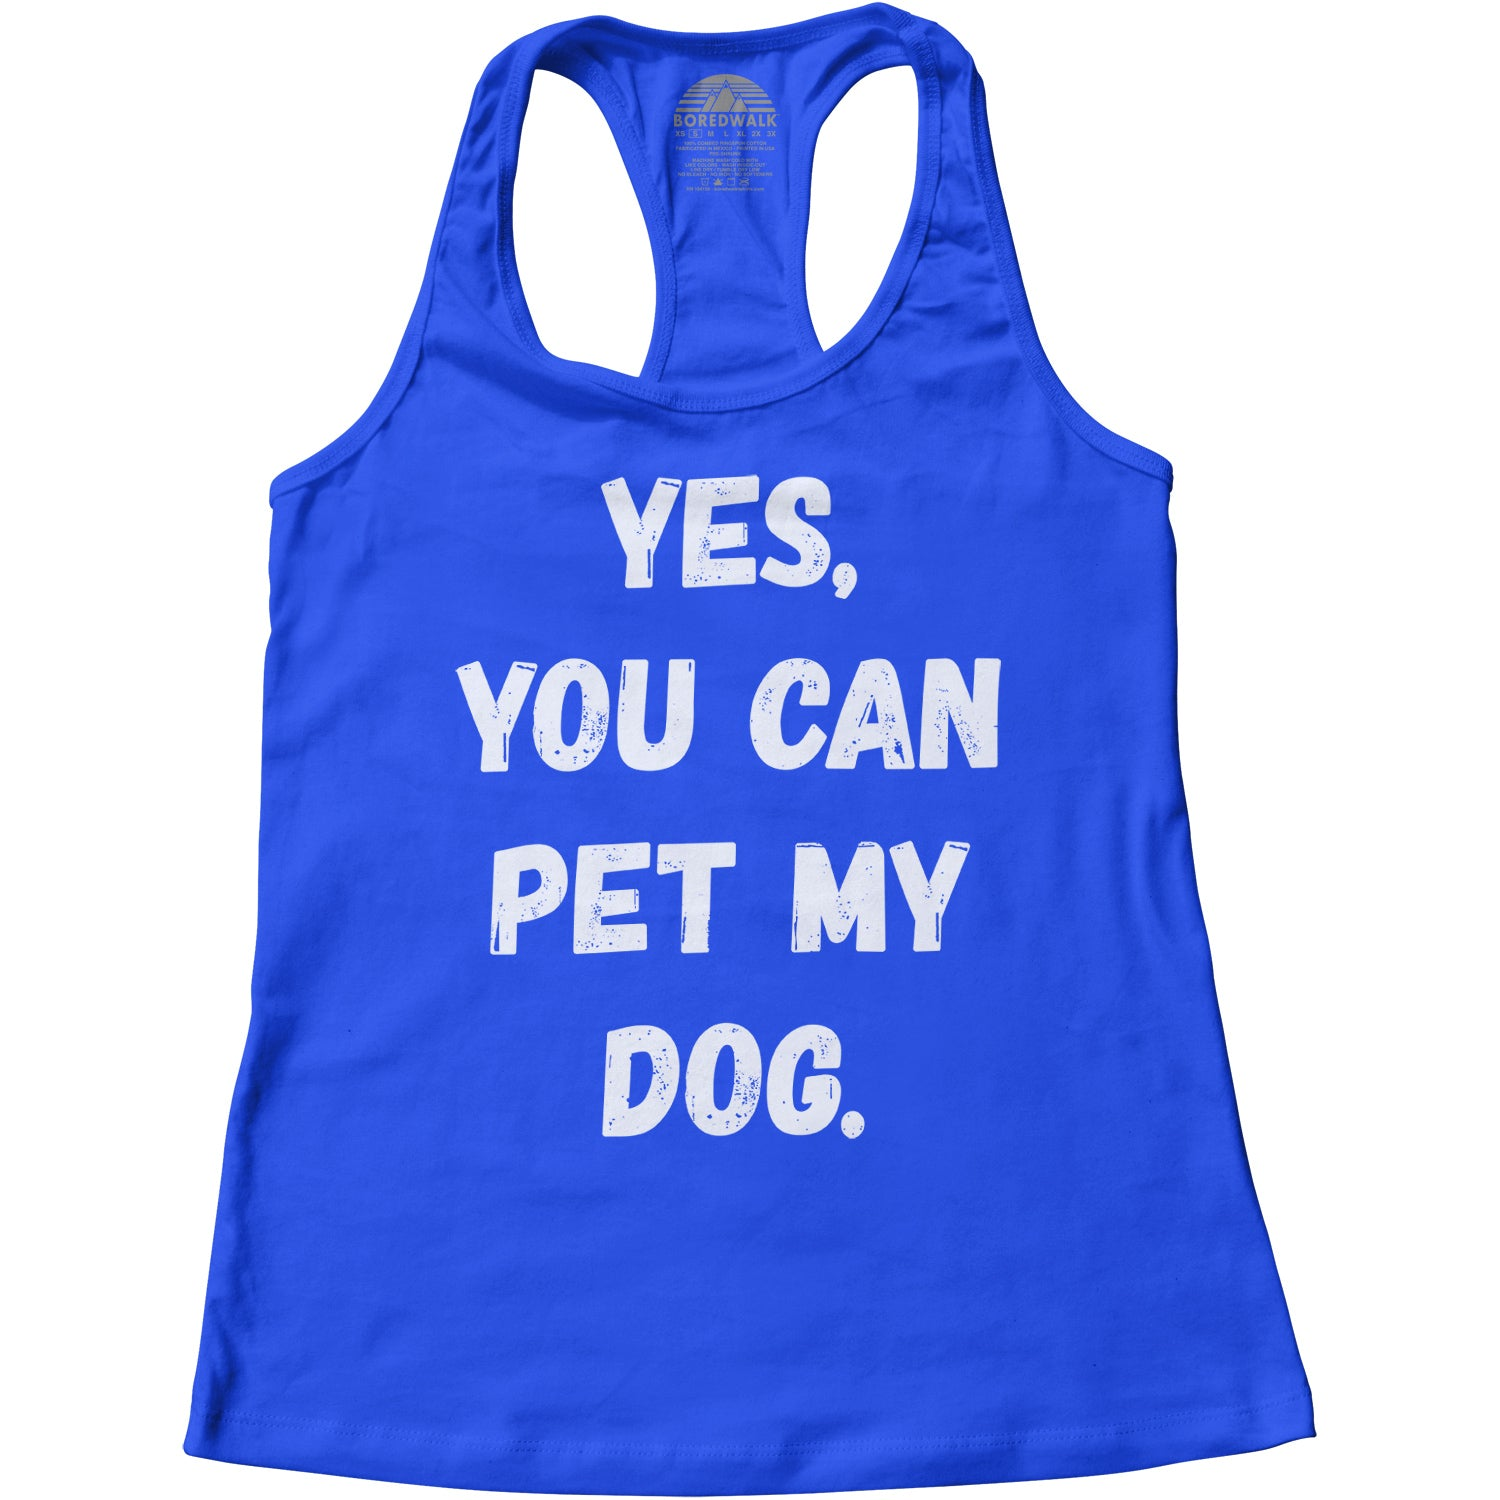 Women's Yes You Can Pet My Dog Racerback Tank Top